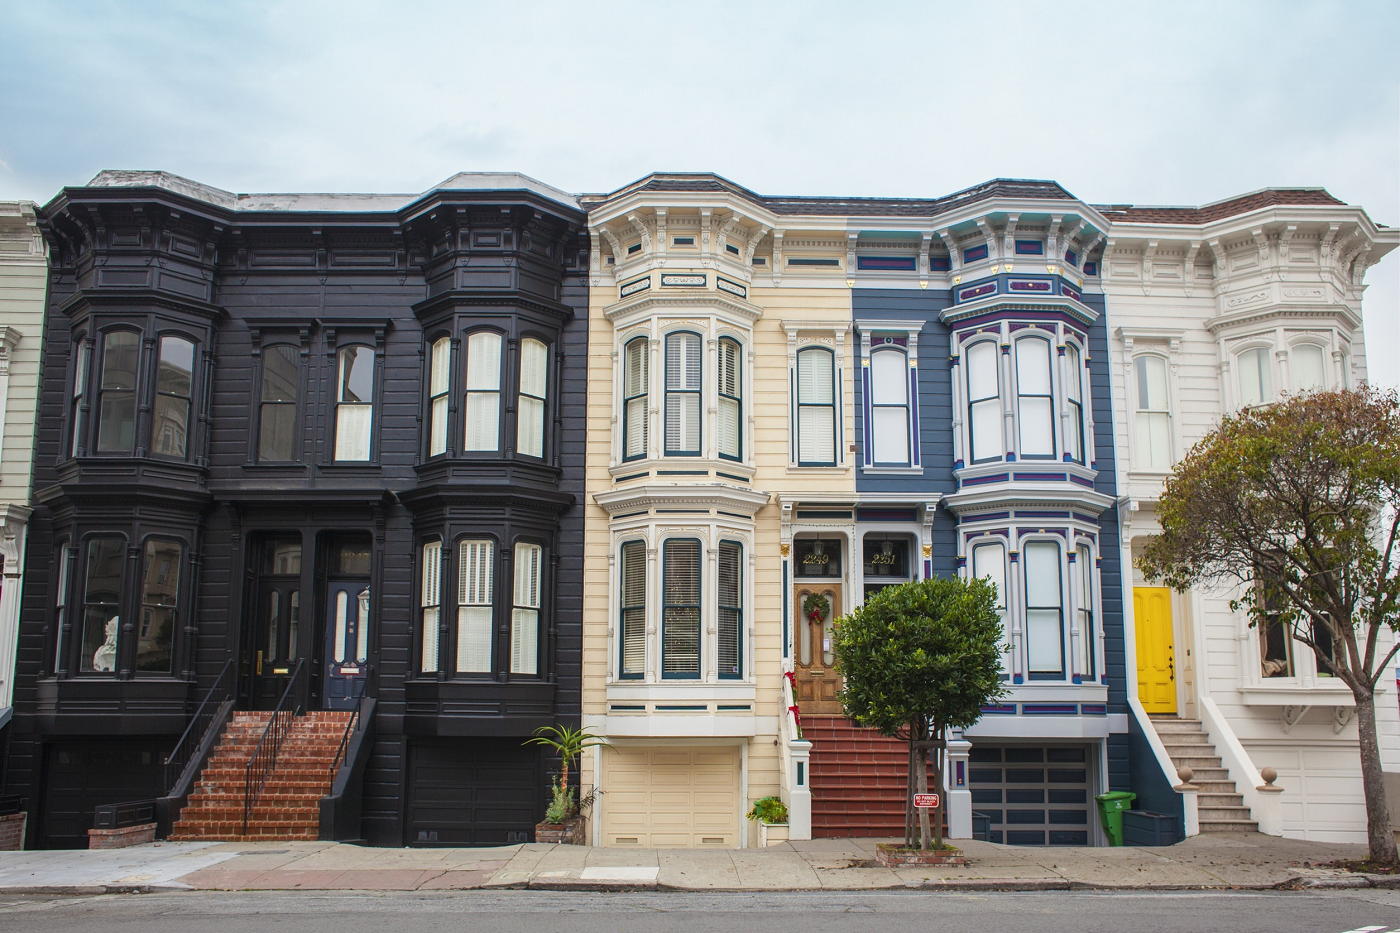 Choosing the Best Neighborhood to Purchase Real Estate